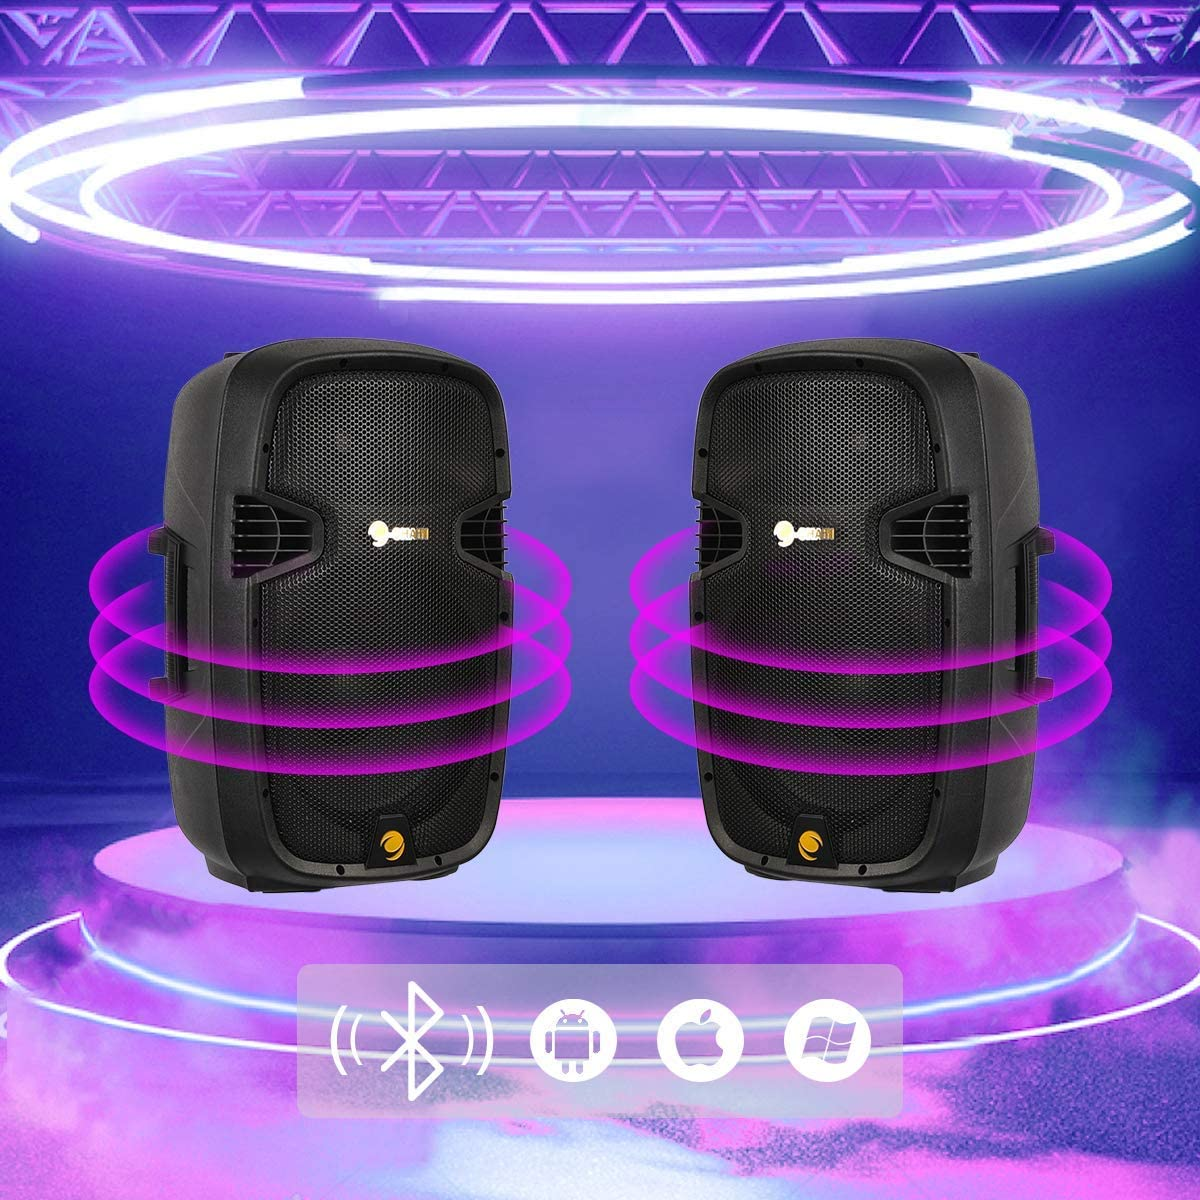 Portable DJ Speaker with Active Bluetooth FM Radio Cchainway 12 Inch 2000 Watts Dual 2-Way Powered PA Speaker System 2 Speaker Stands Passive Speakers Microphone Remote Control USB//SD Card